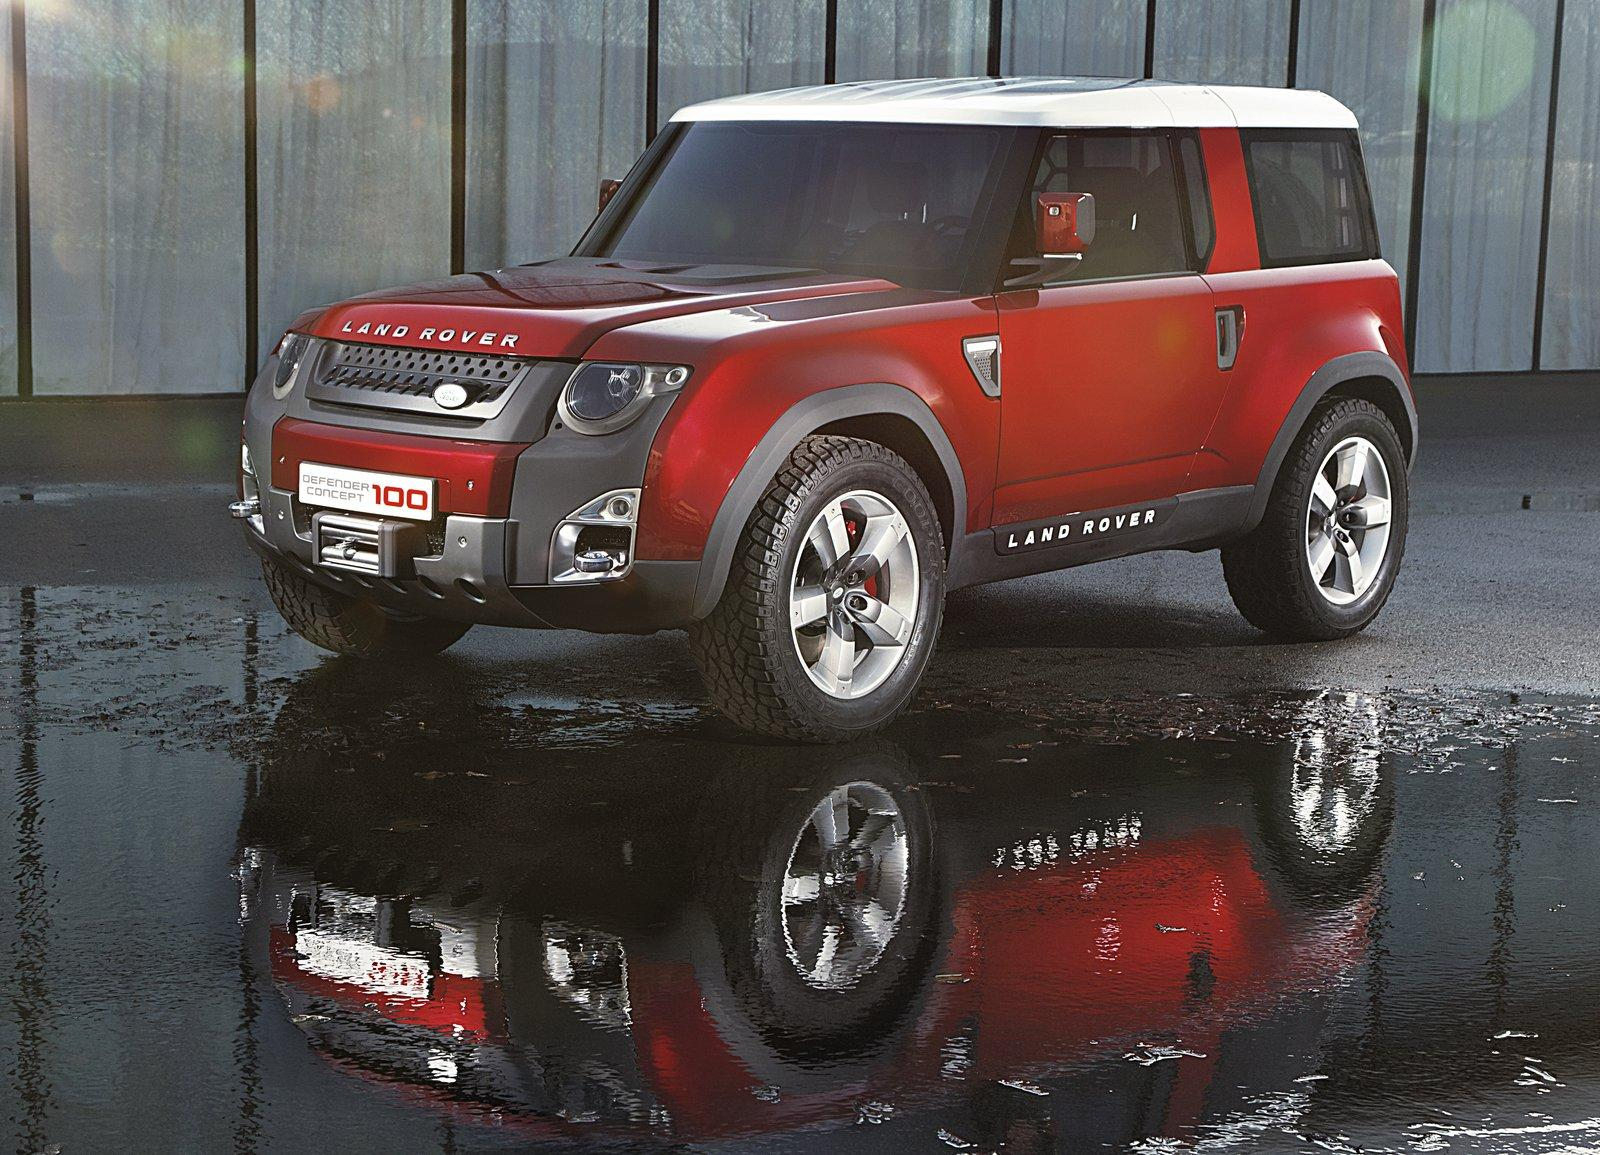 https://pictures.topspeed.com/IMG/jpg/201201/2011-land-rover-dc100-con-2.jpg